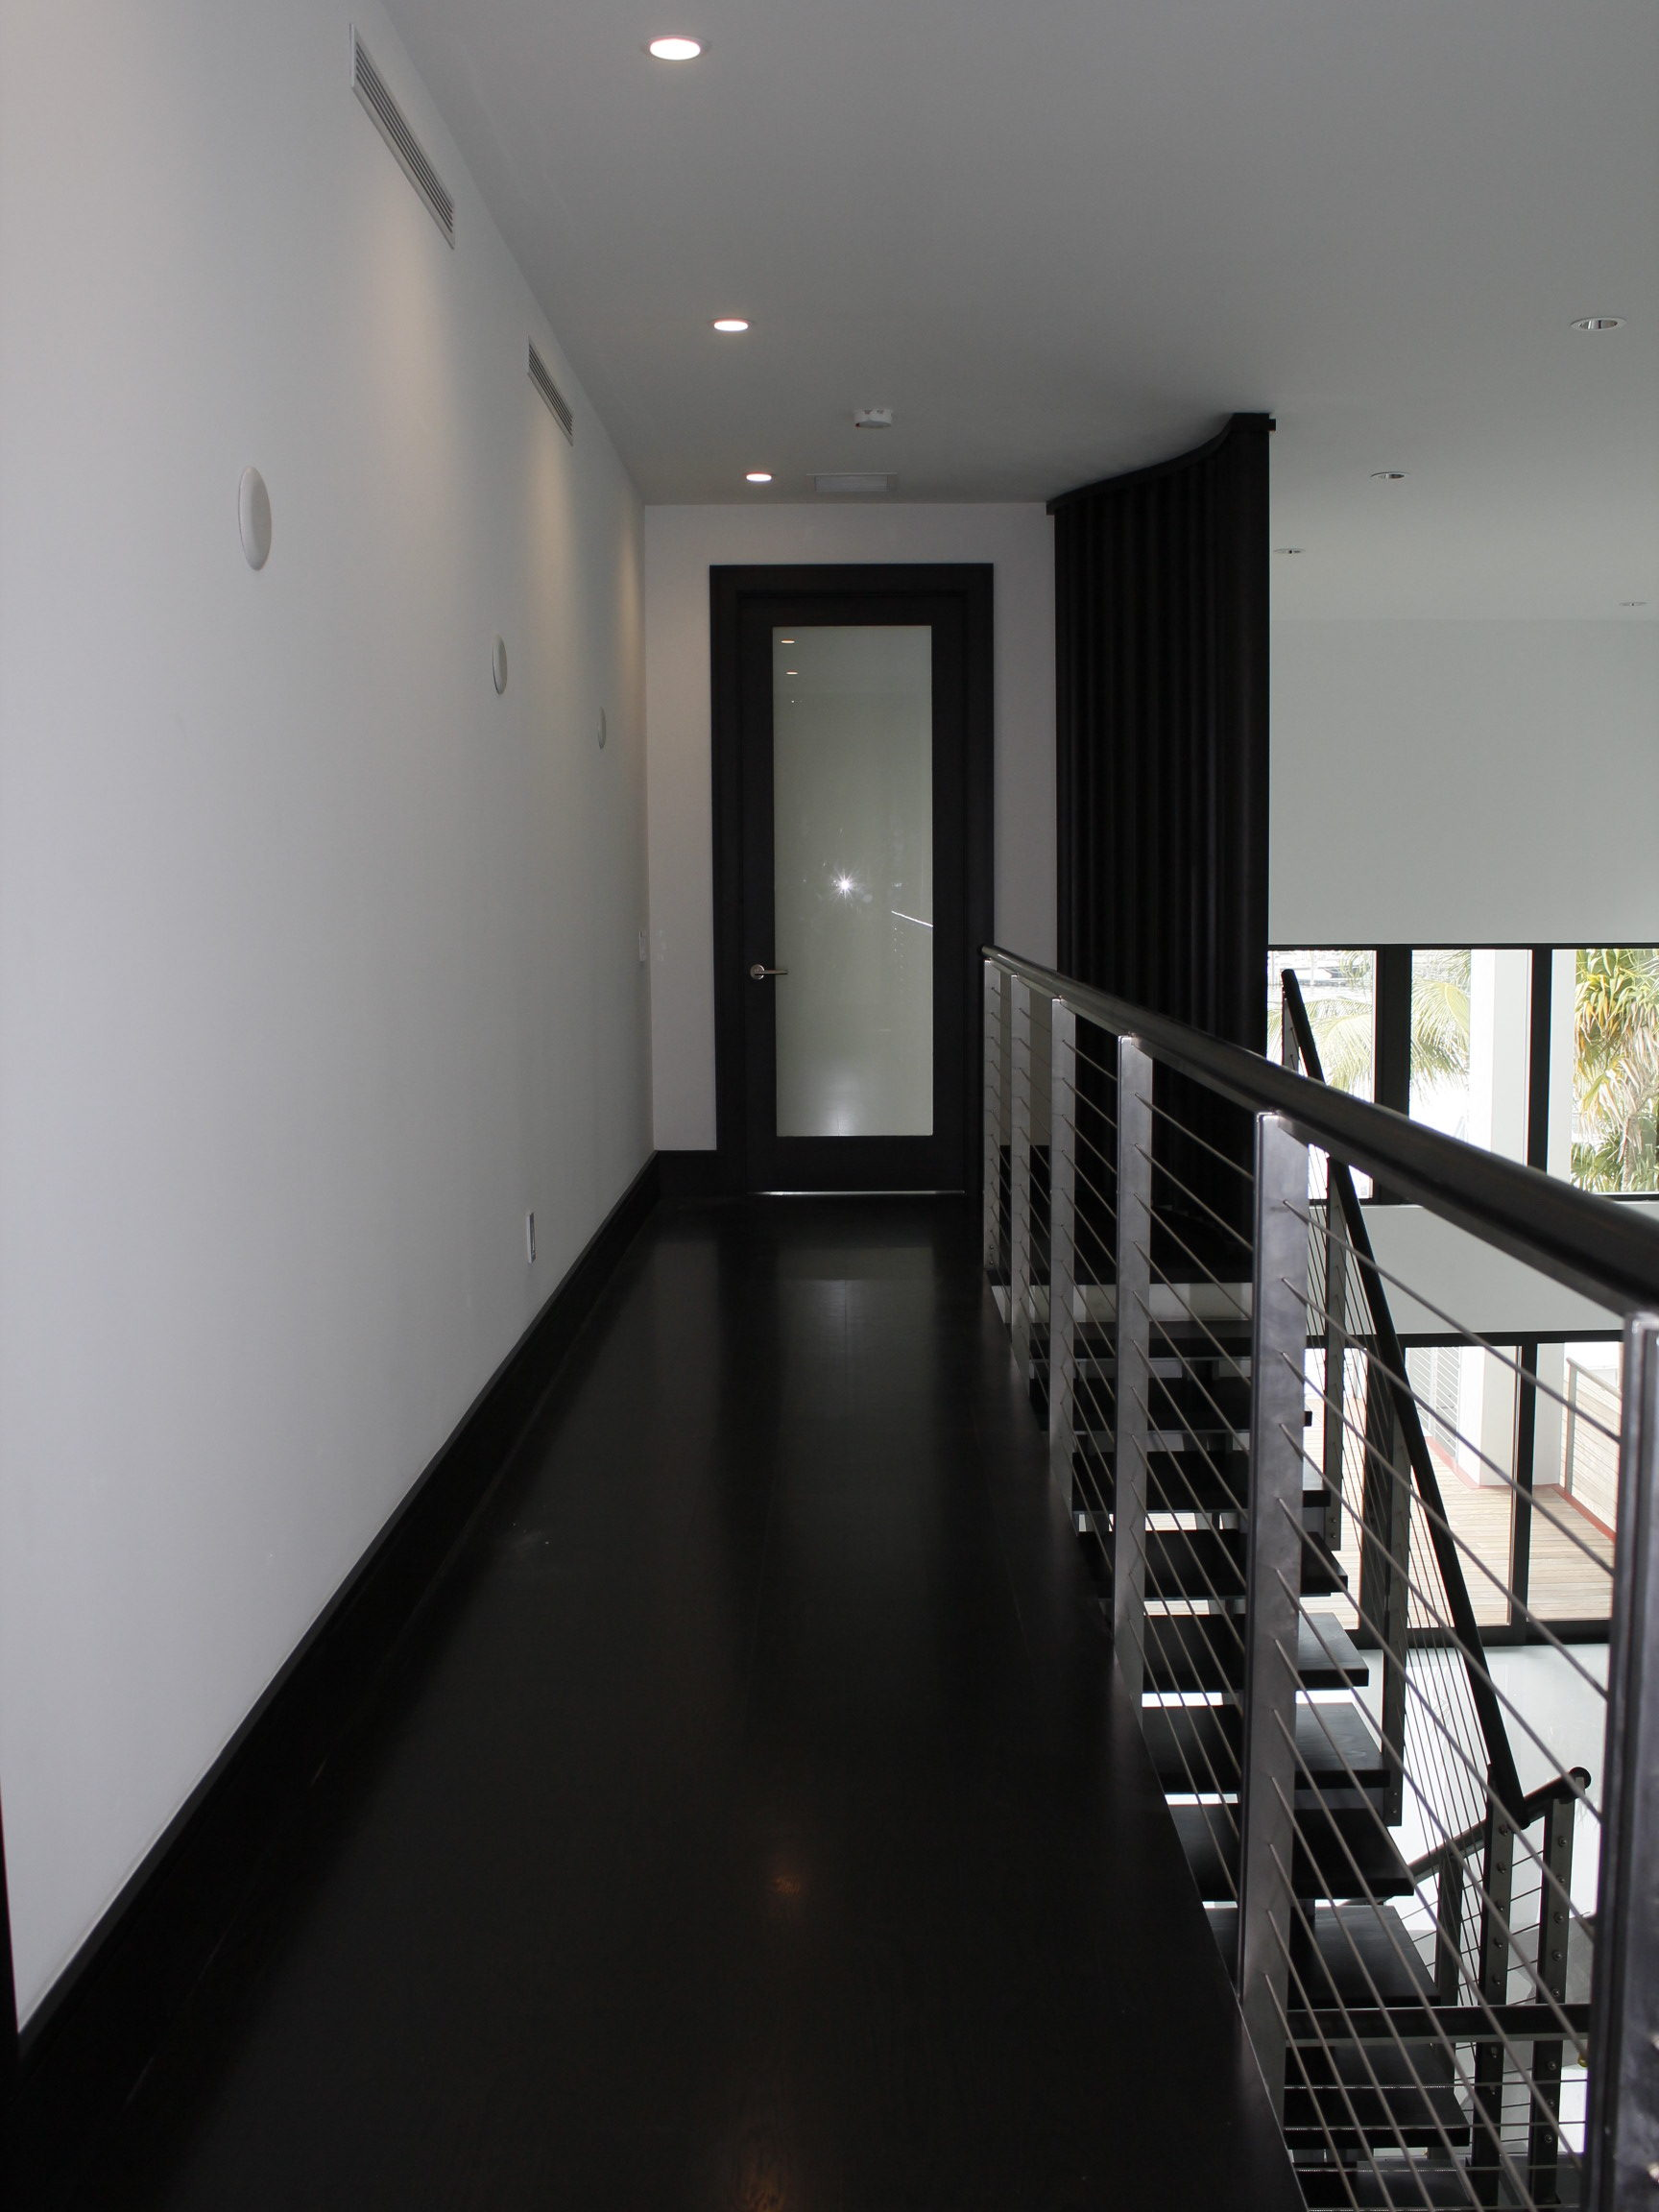 The open railing design allows the feel of a floating second floor.